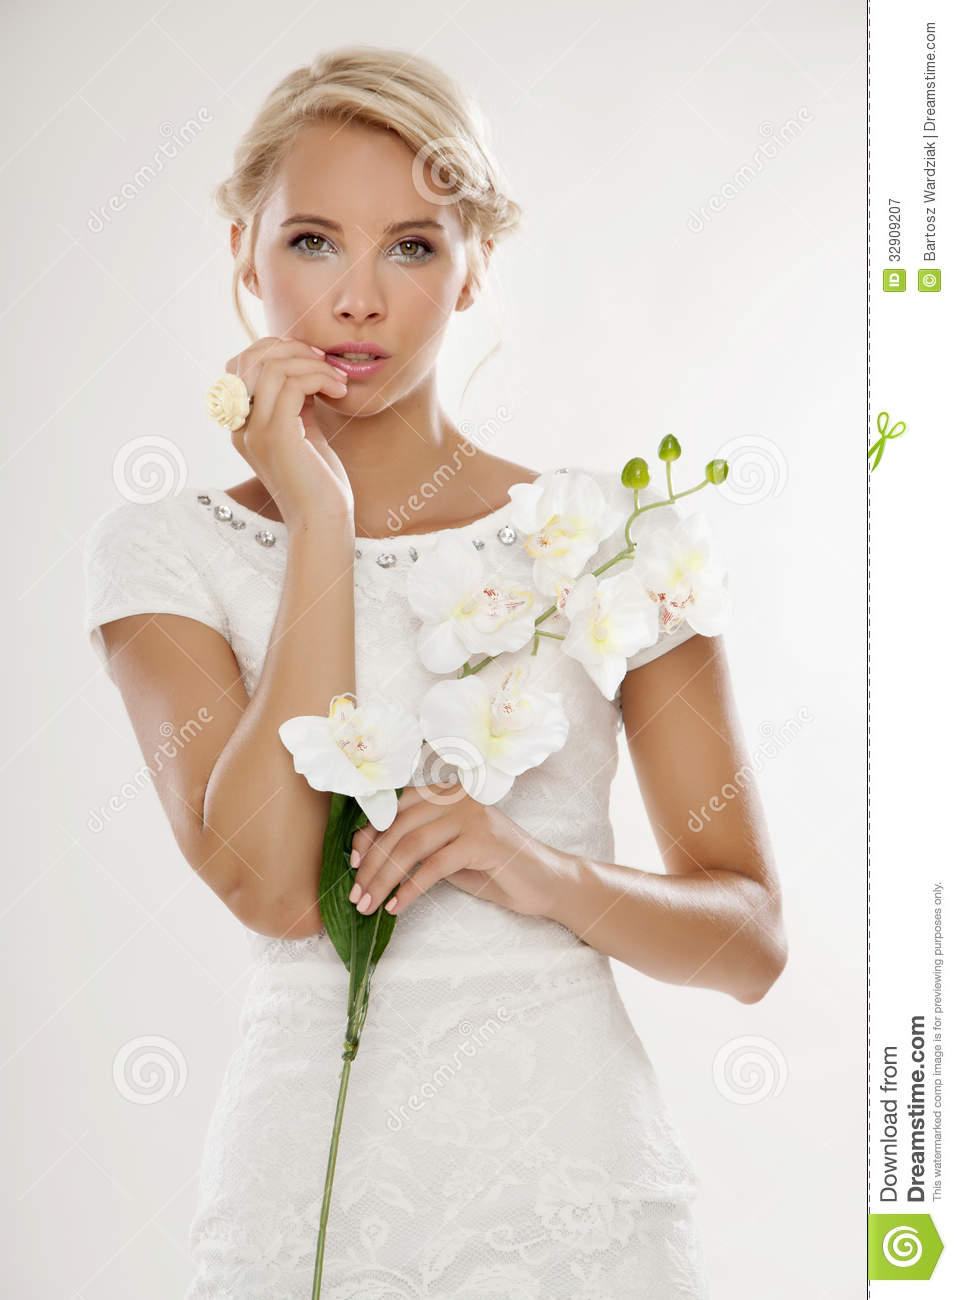 Young bride in white wedding dress happy smiling stock for Wedding dresses for young brides